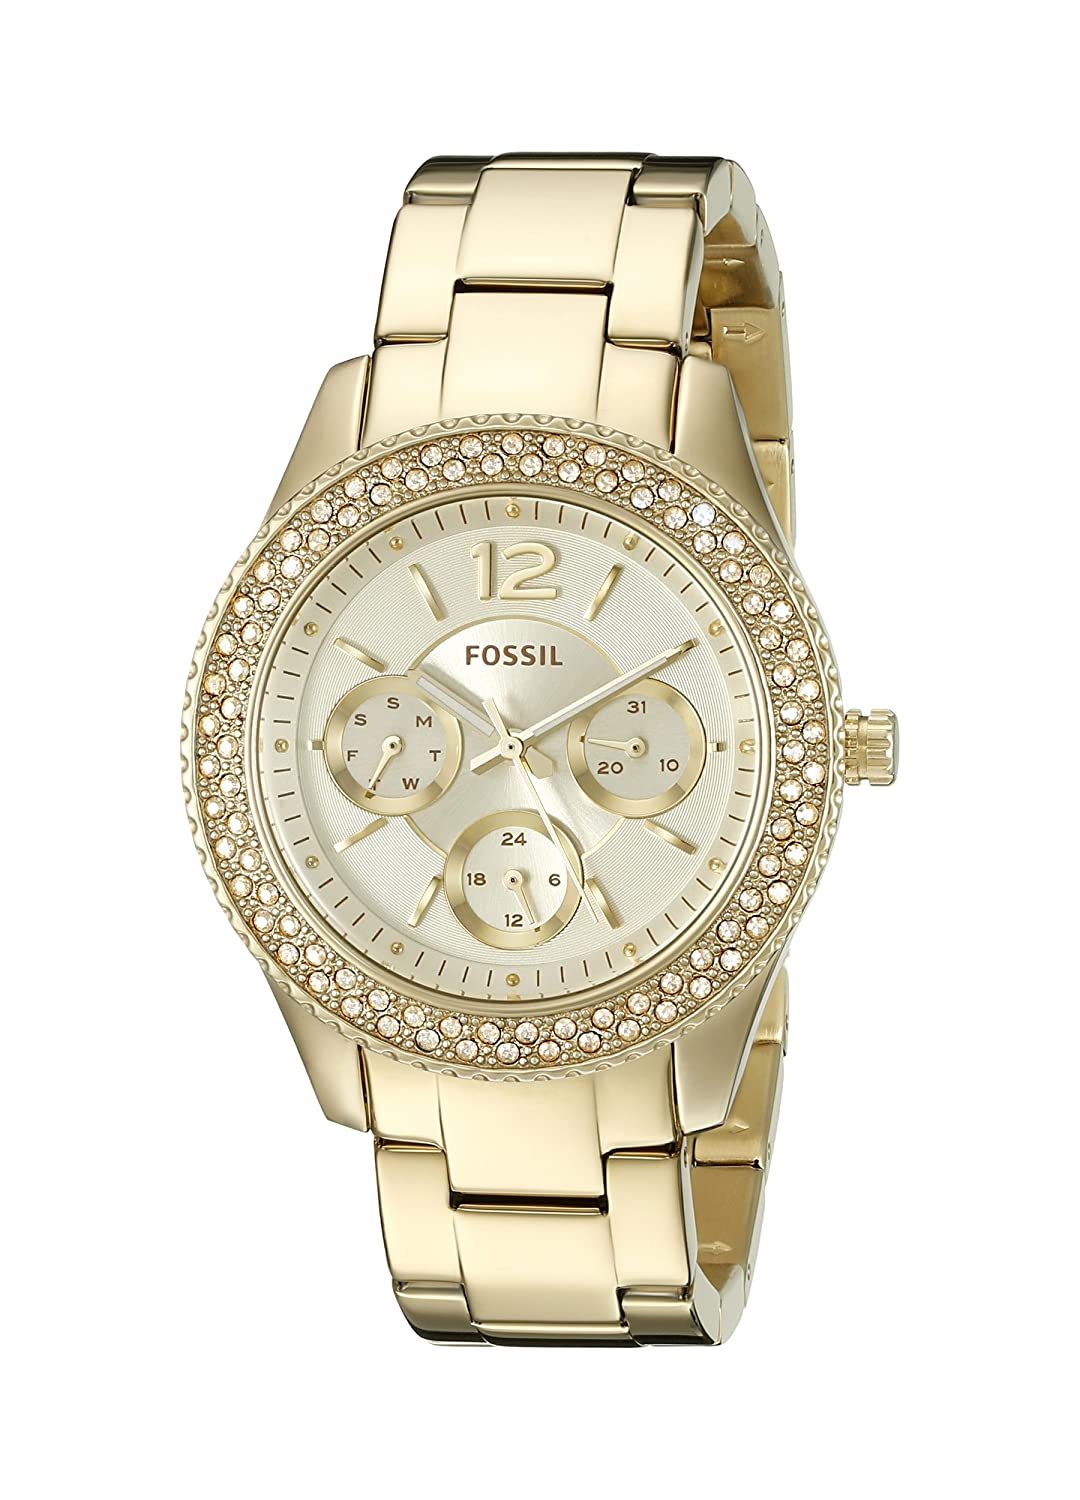 Upto 40% Off On Fossil watches   Fossil End of Season Stella Analog Gold Dial Women's Watch - ES3589 By Amazon @ Rs.7,996